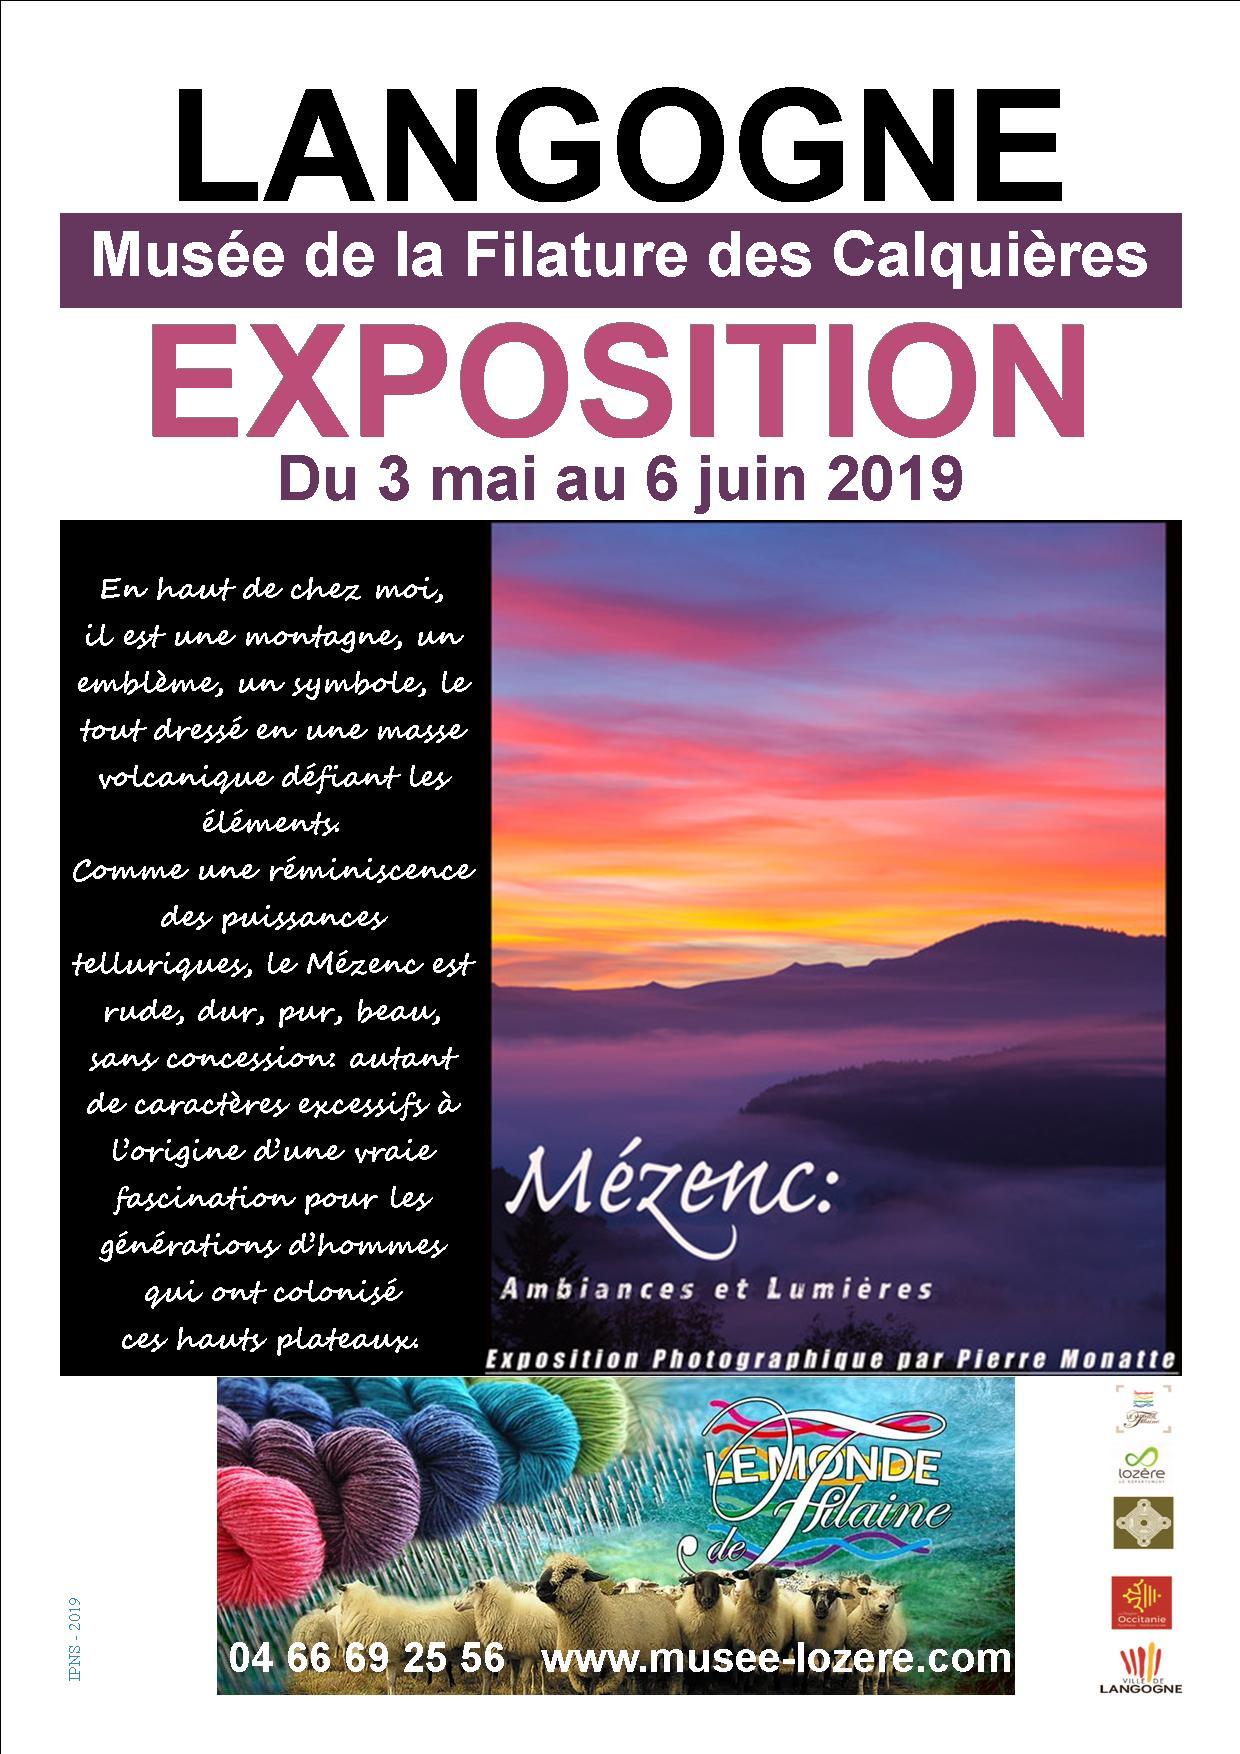 EXPOSITION PHOTOS - PIERRE MONATTE